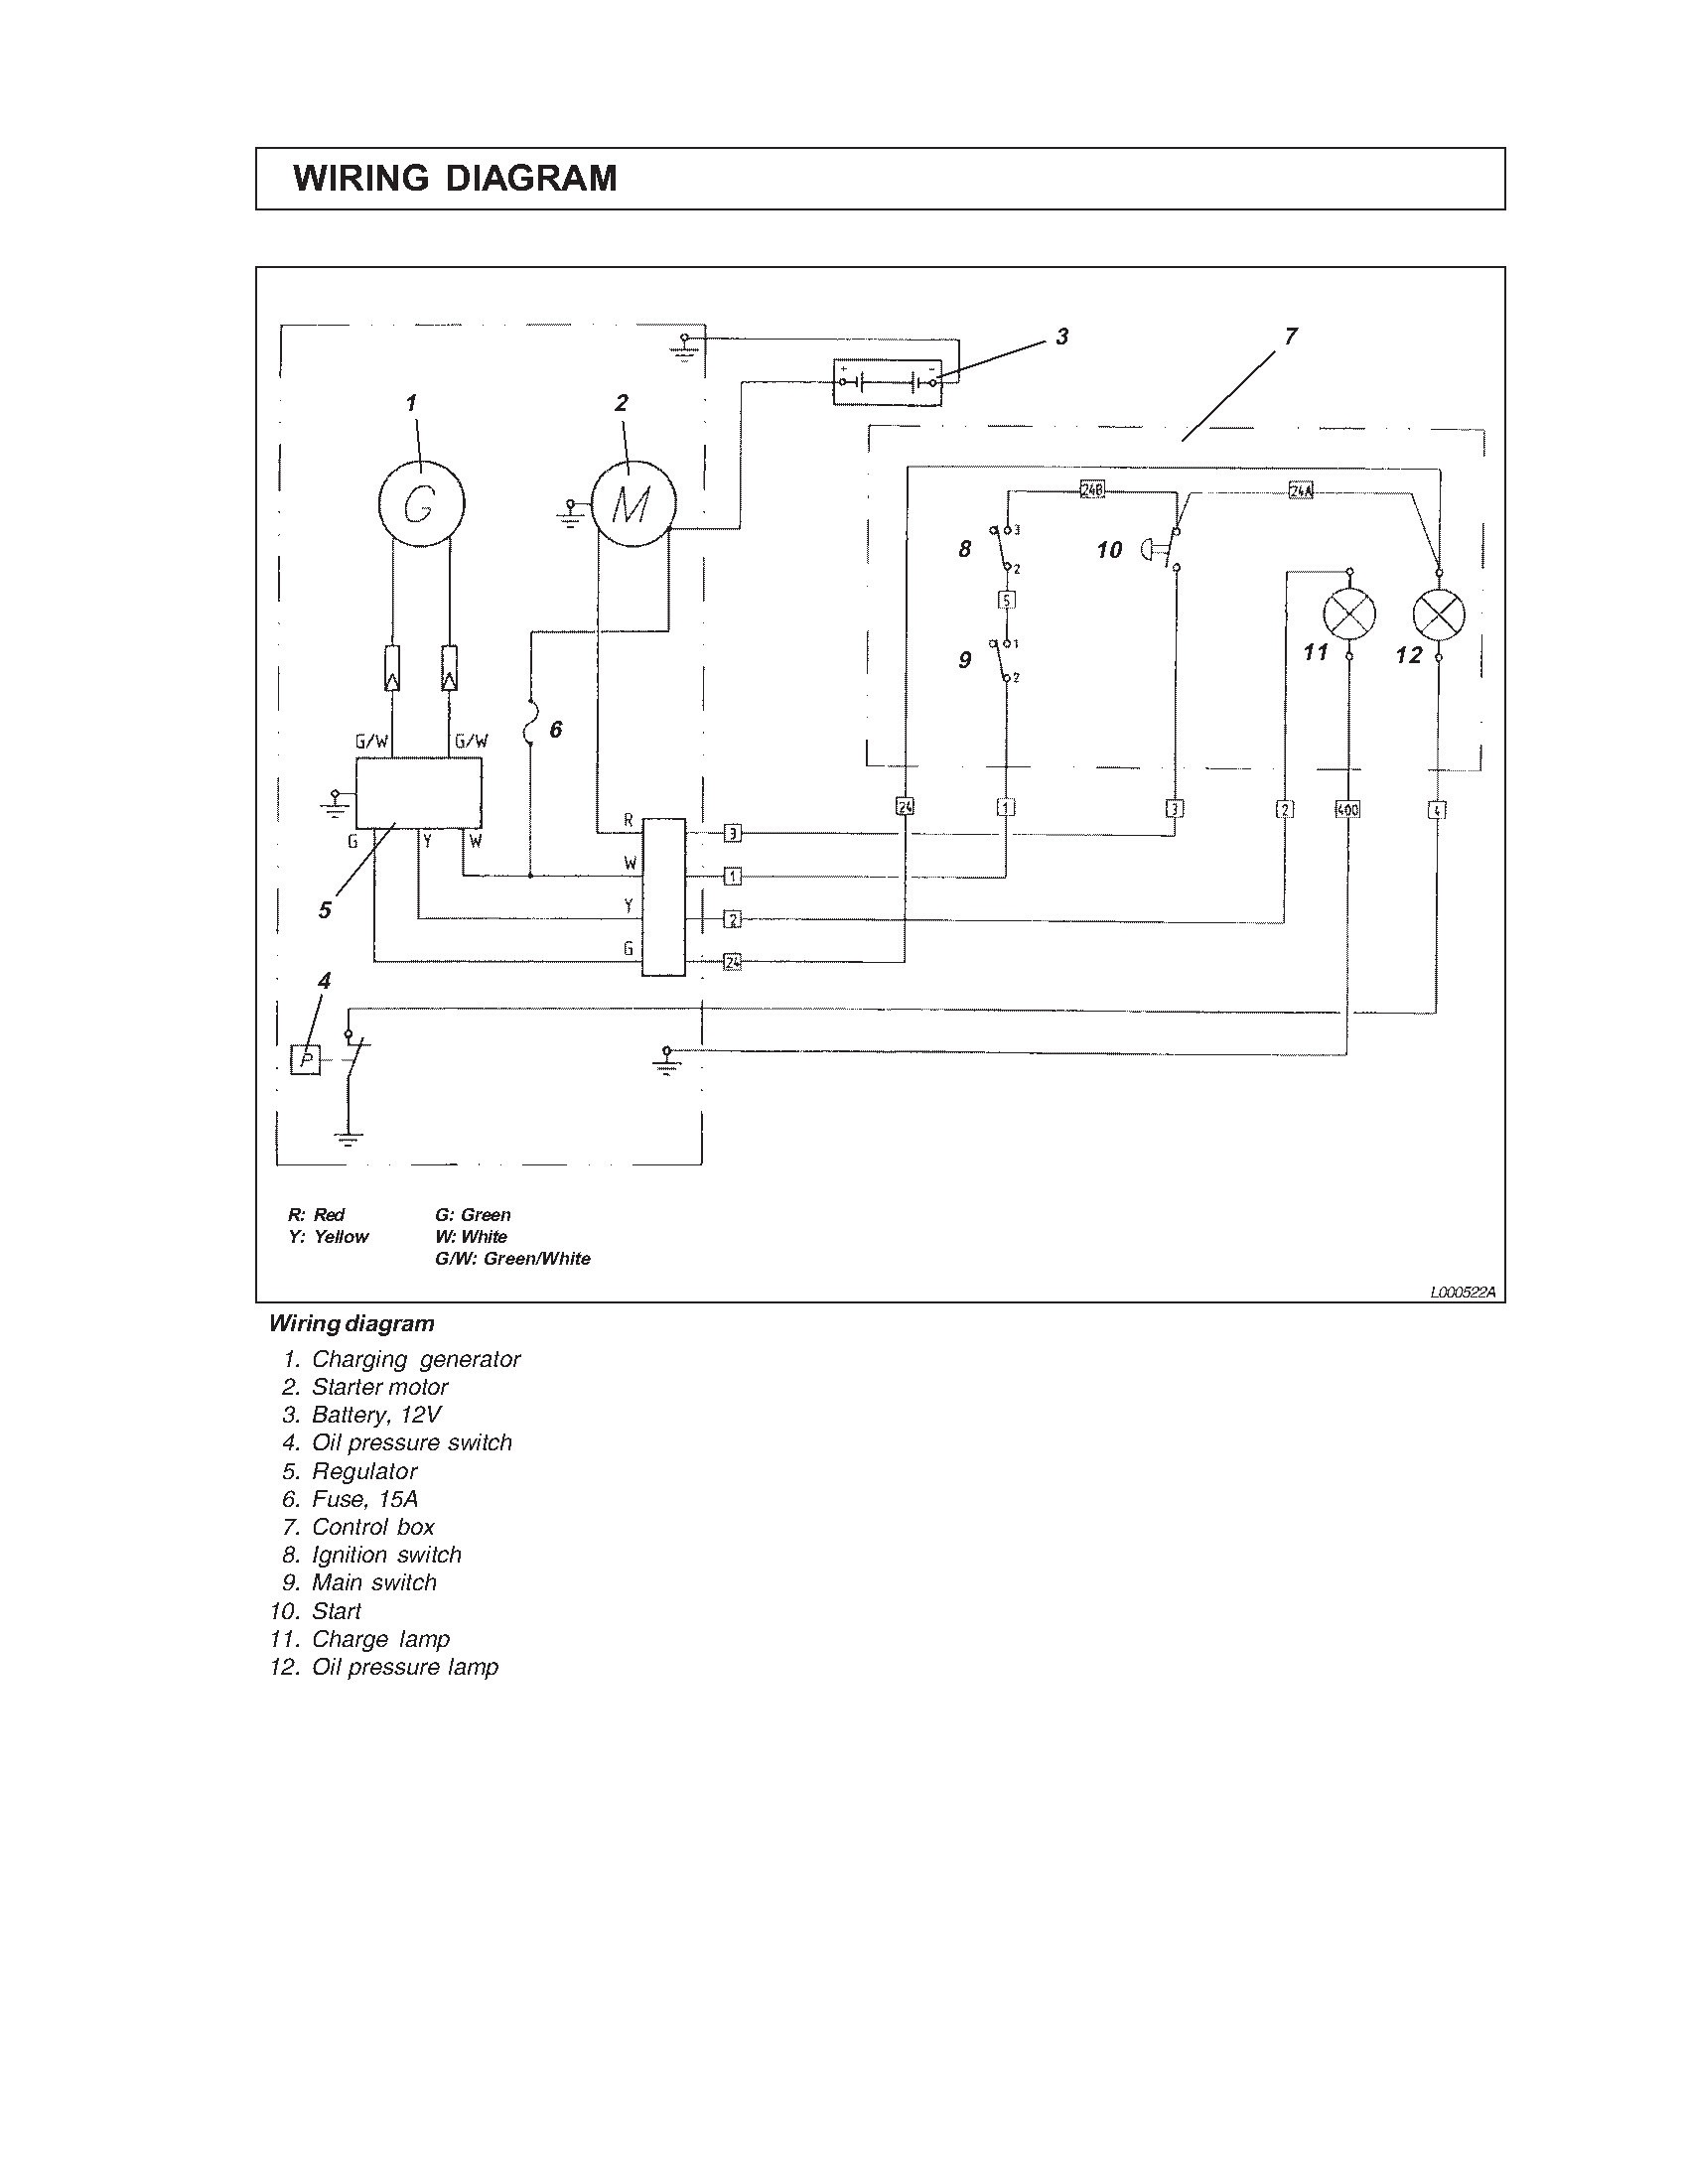 Yanmar Kill Switch Wiring Schematics Diagrams Car Diagram I Have A L 70 Engine And Bought 12v Starter Kit Key Rh Justanswer Com Guitar Schematic Small